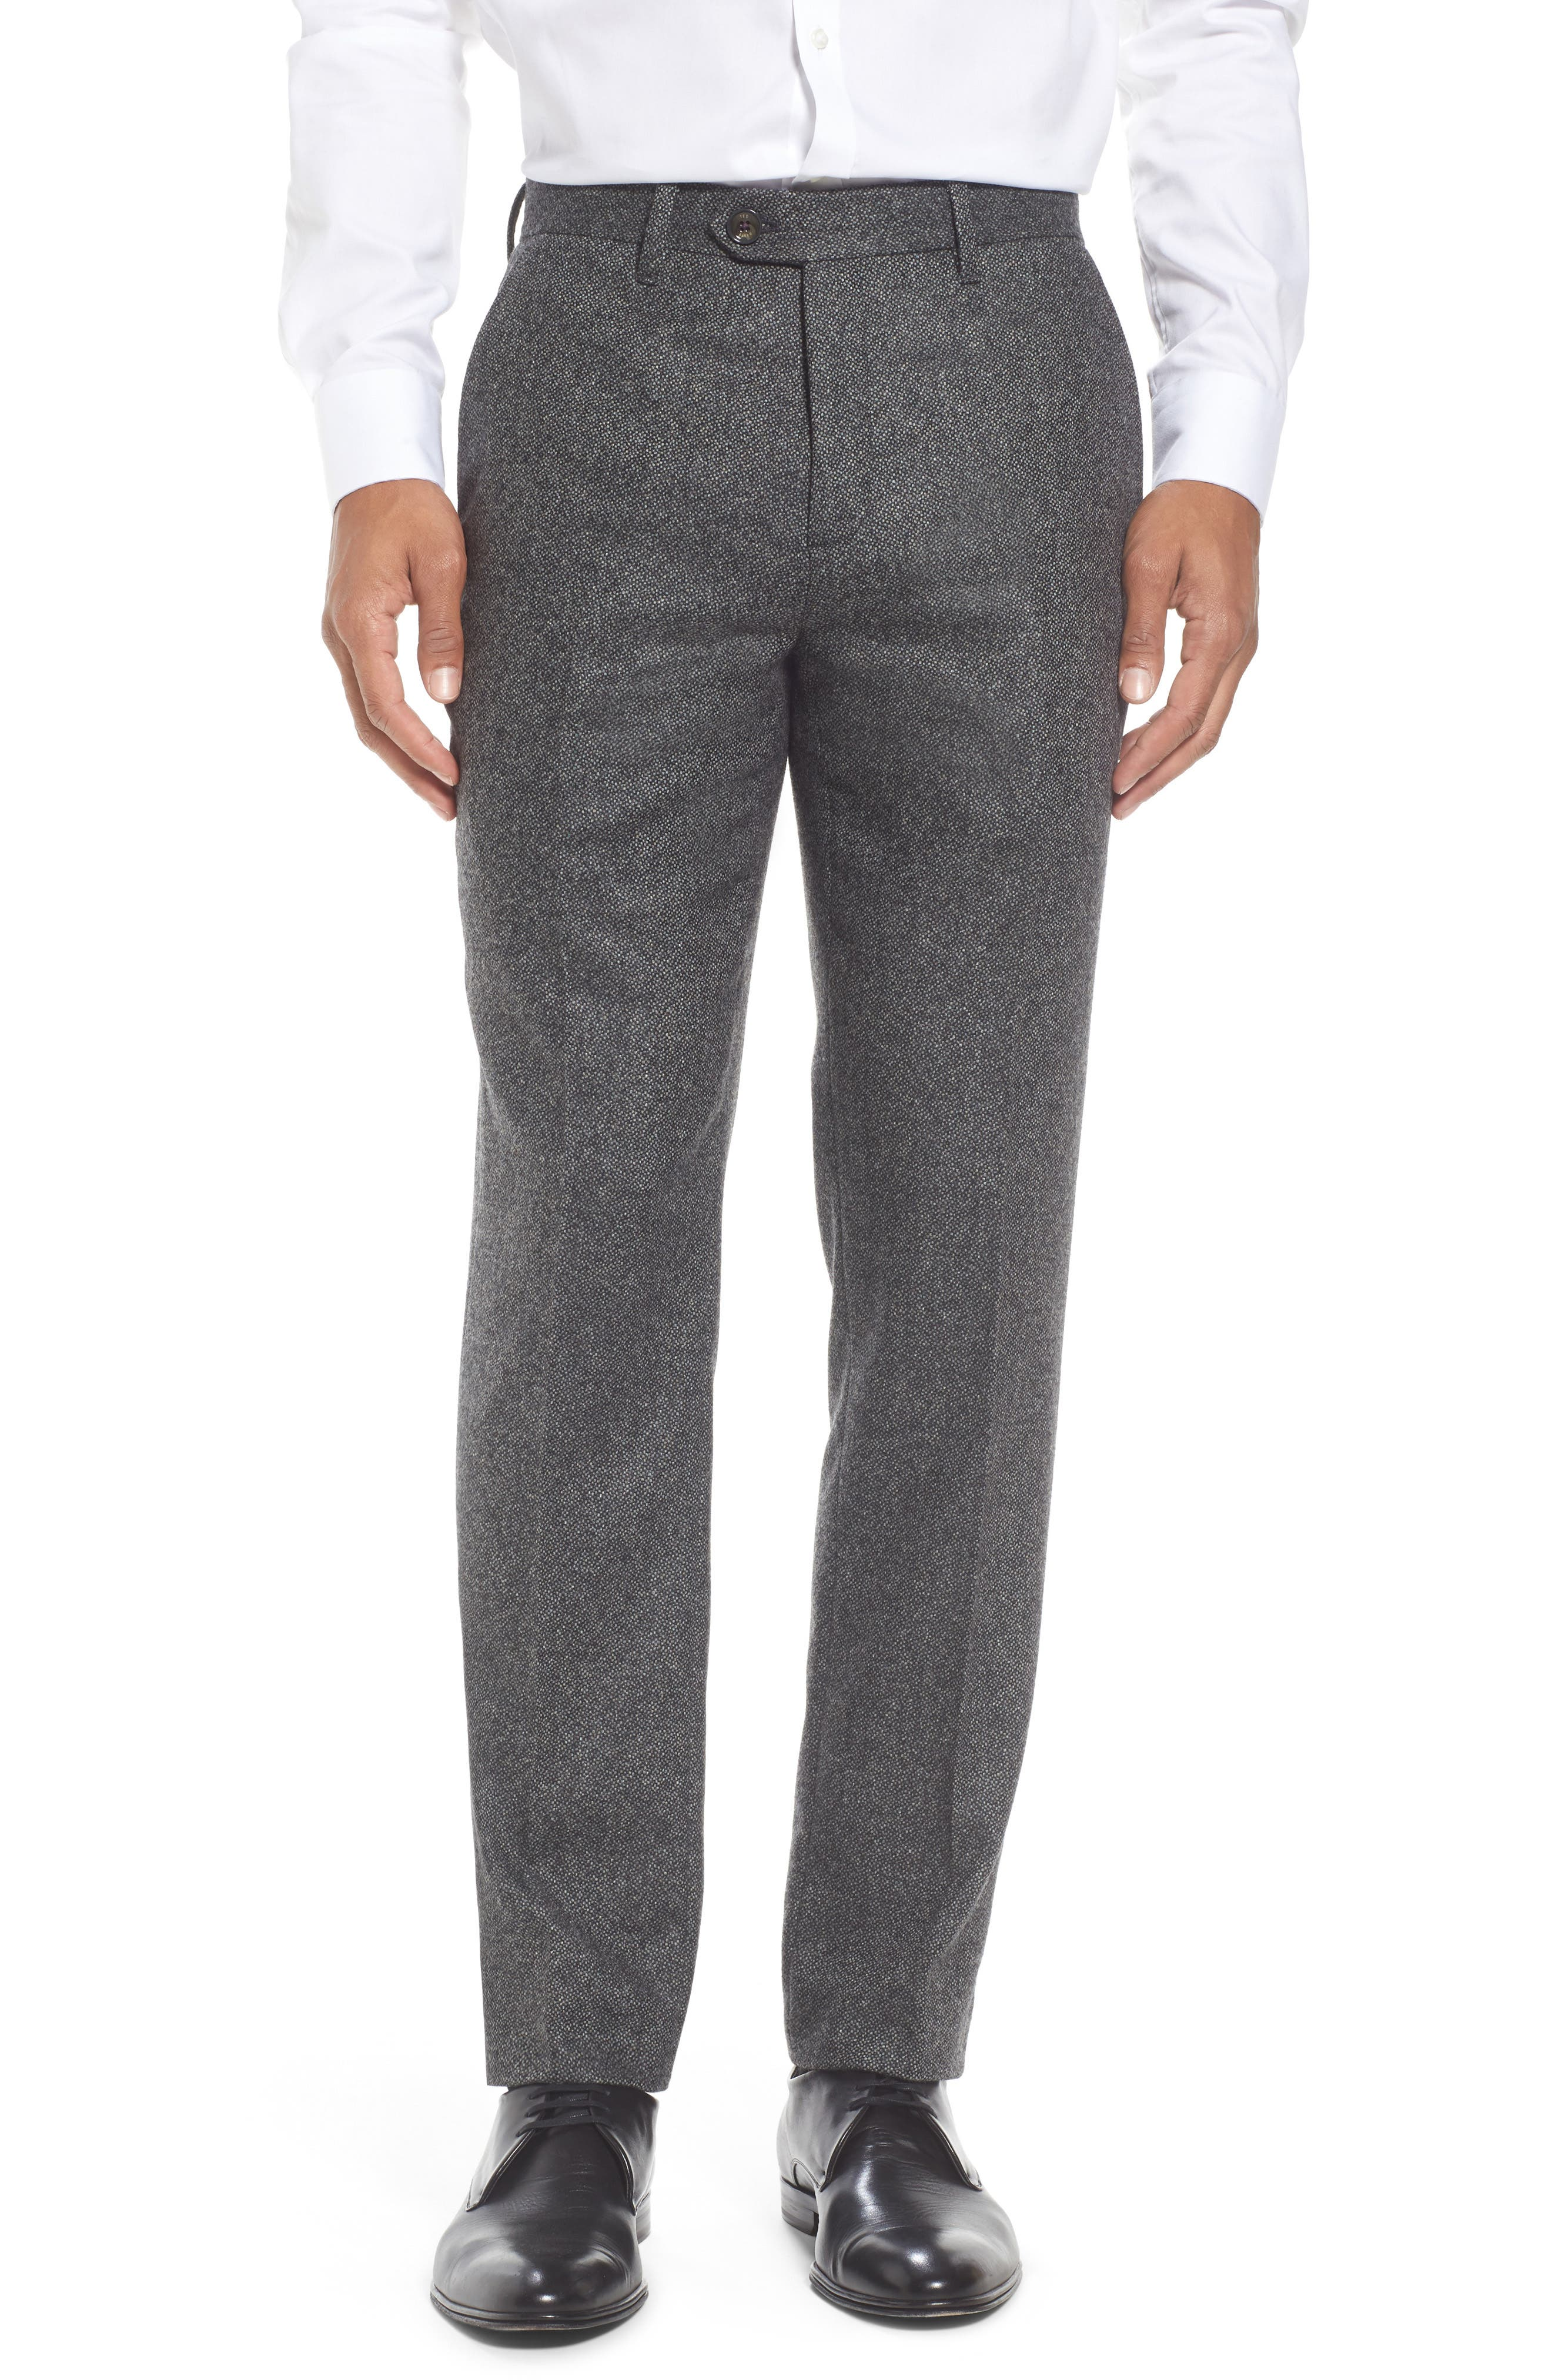 Modern Slim Fit Trousers,                             Main thumbnail 1, color,                             Charcoal